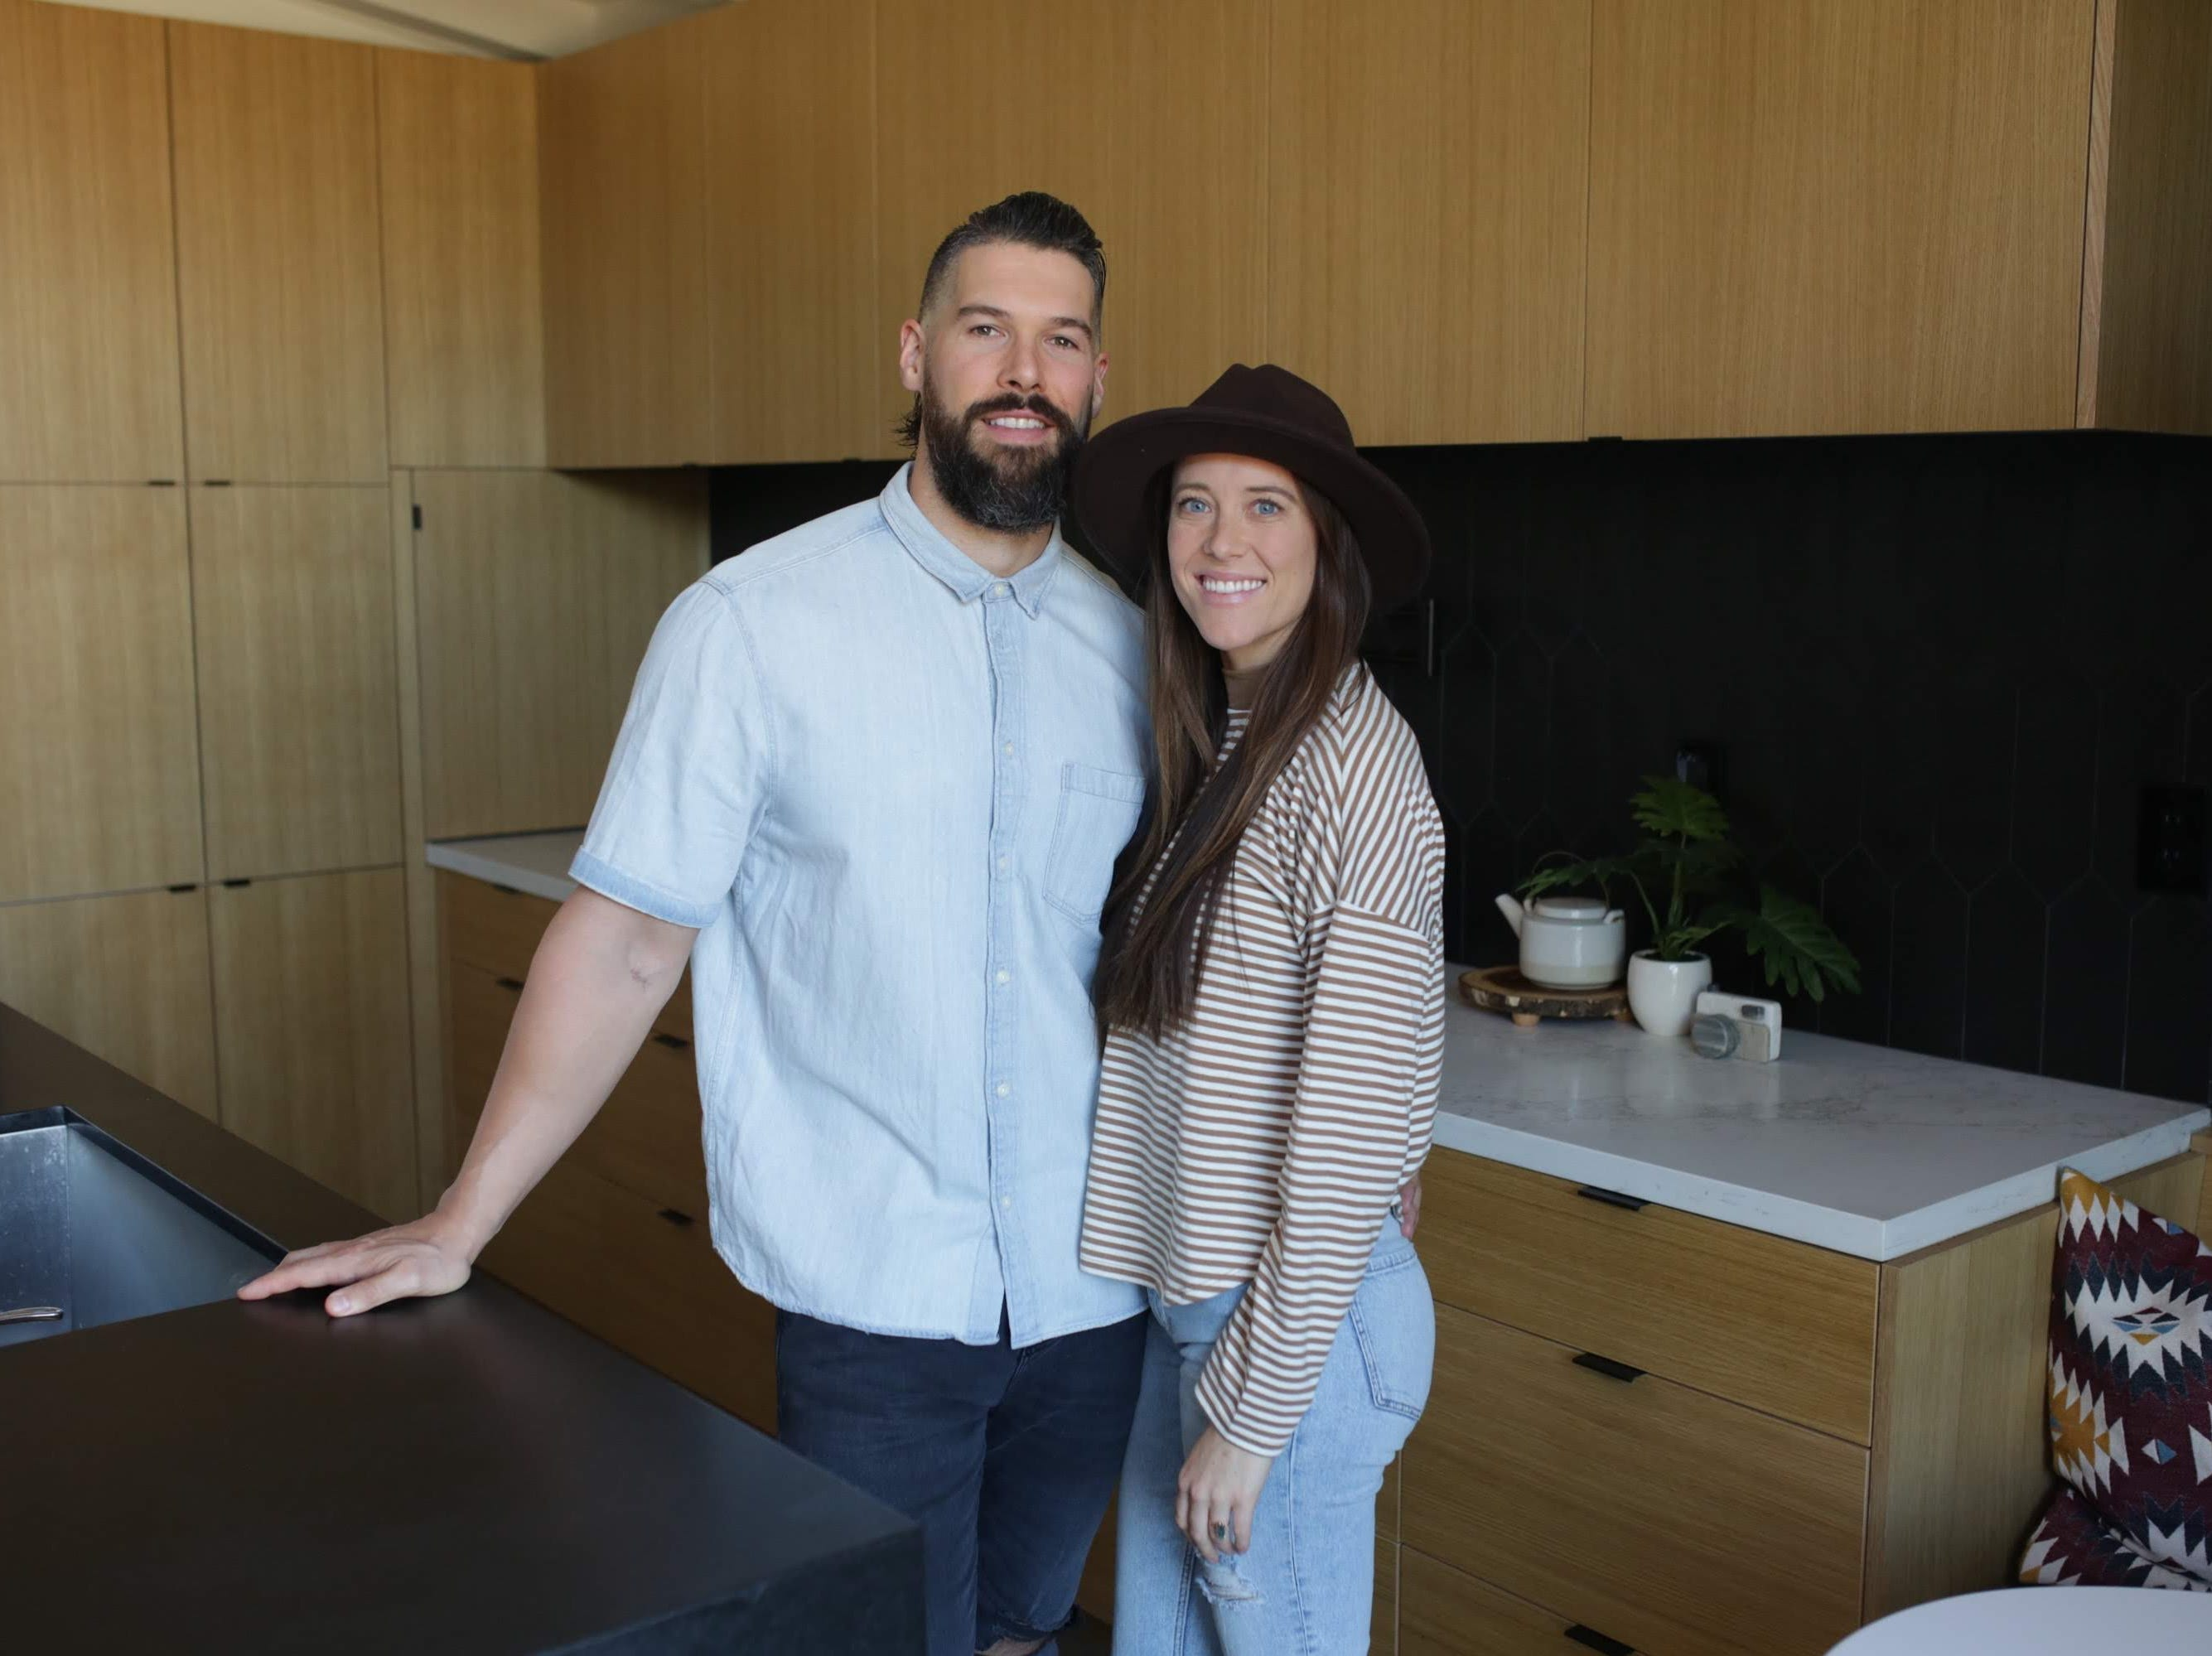 Malcolm Gwilliam and Lea Peterson moved into their Ralph Haver home in the Arcadia area of Phoenix in February 2018.